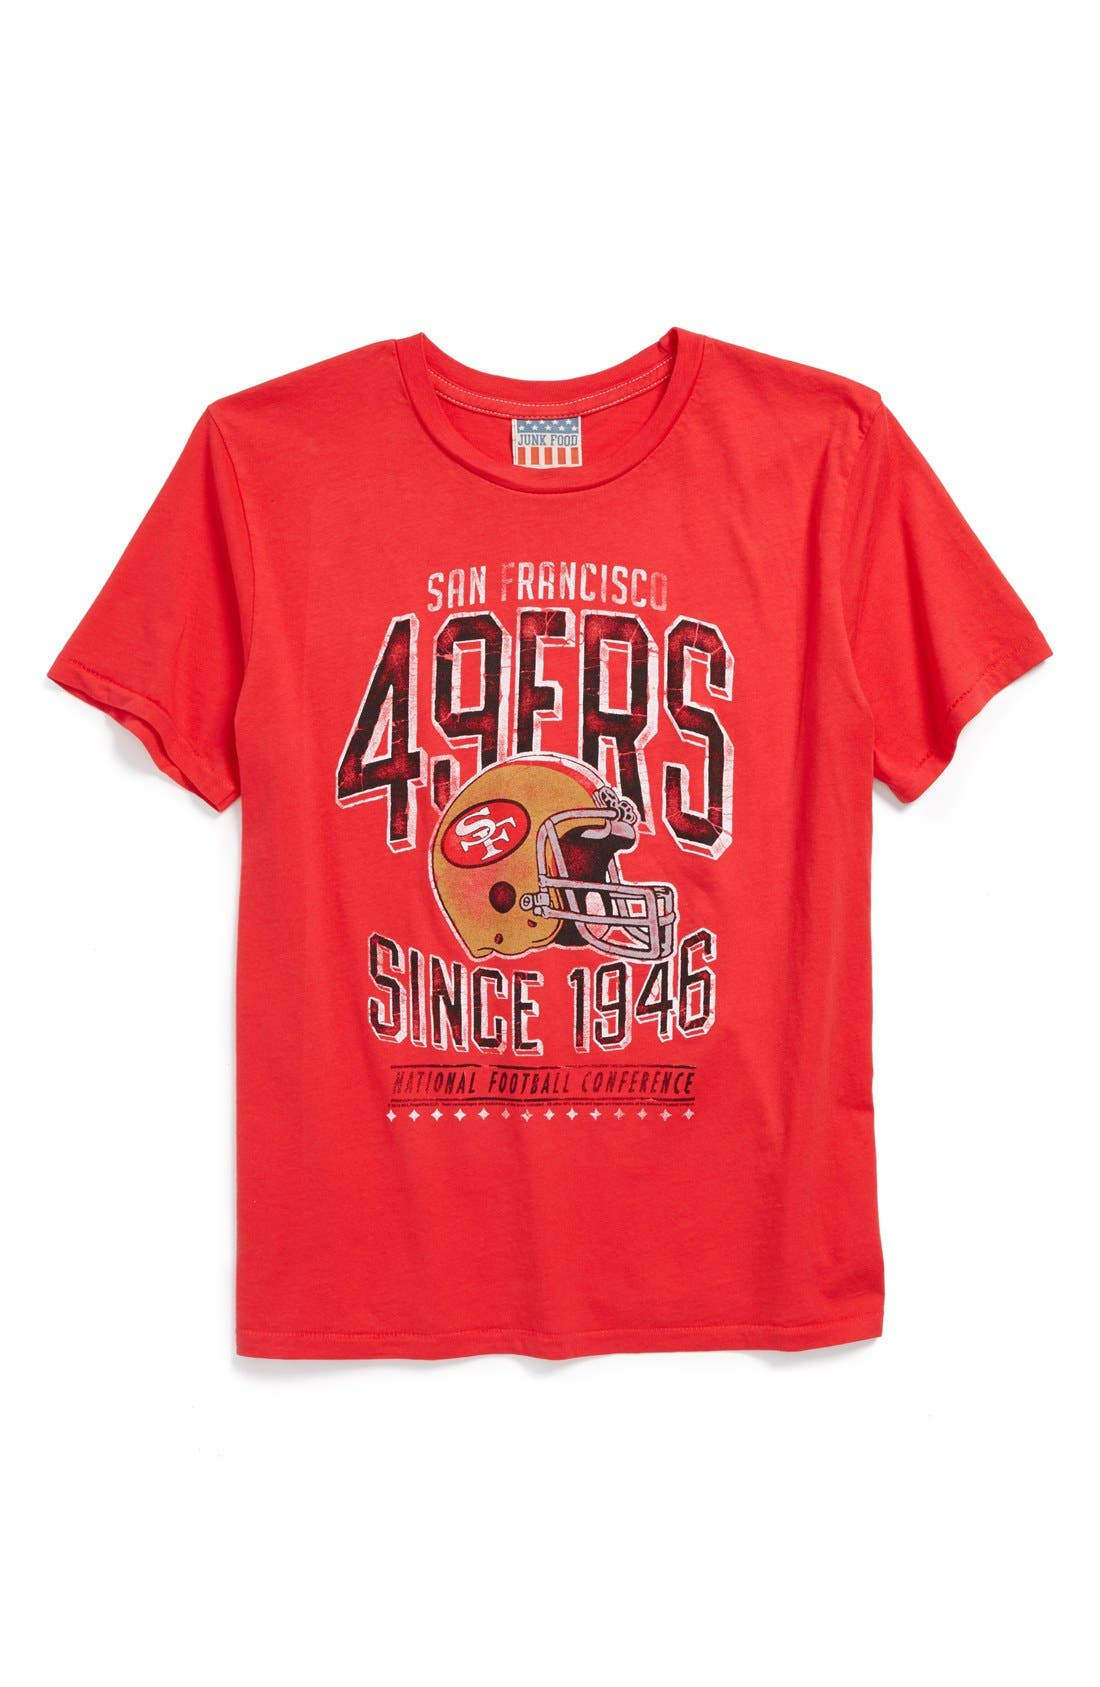 Main Image - Junk Food 'San Francisco 49ers - NFL' Graphic T-Shirt (Little Boys & Big Boys)